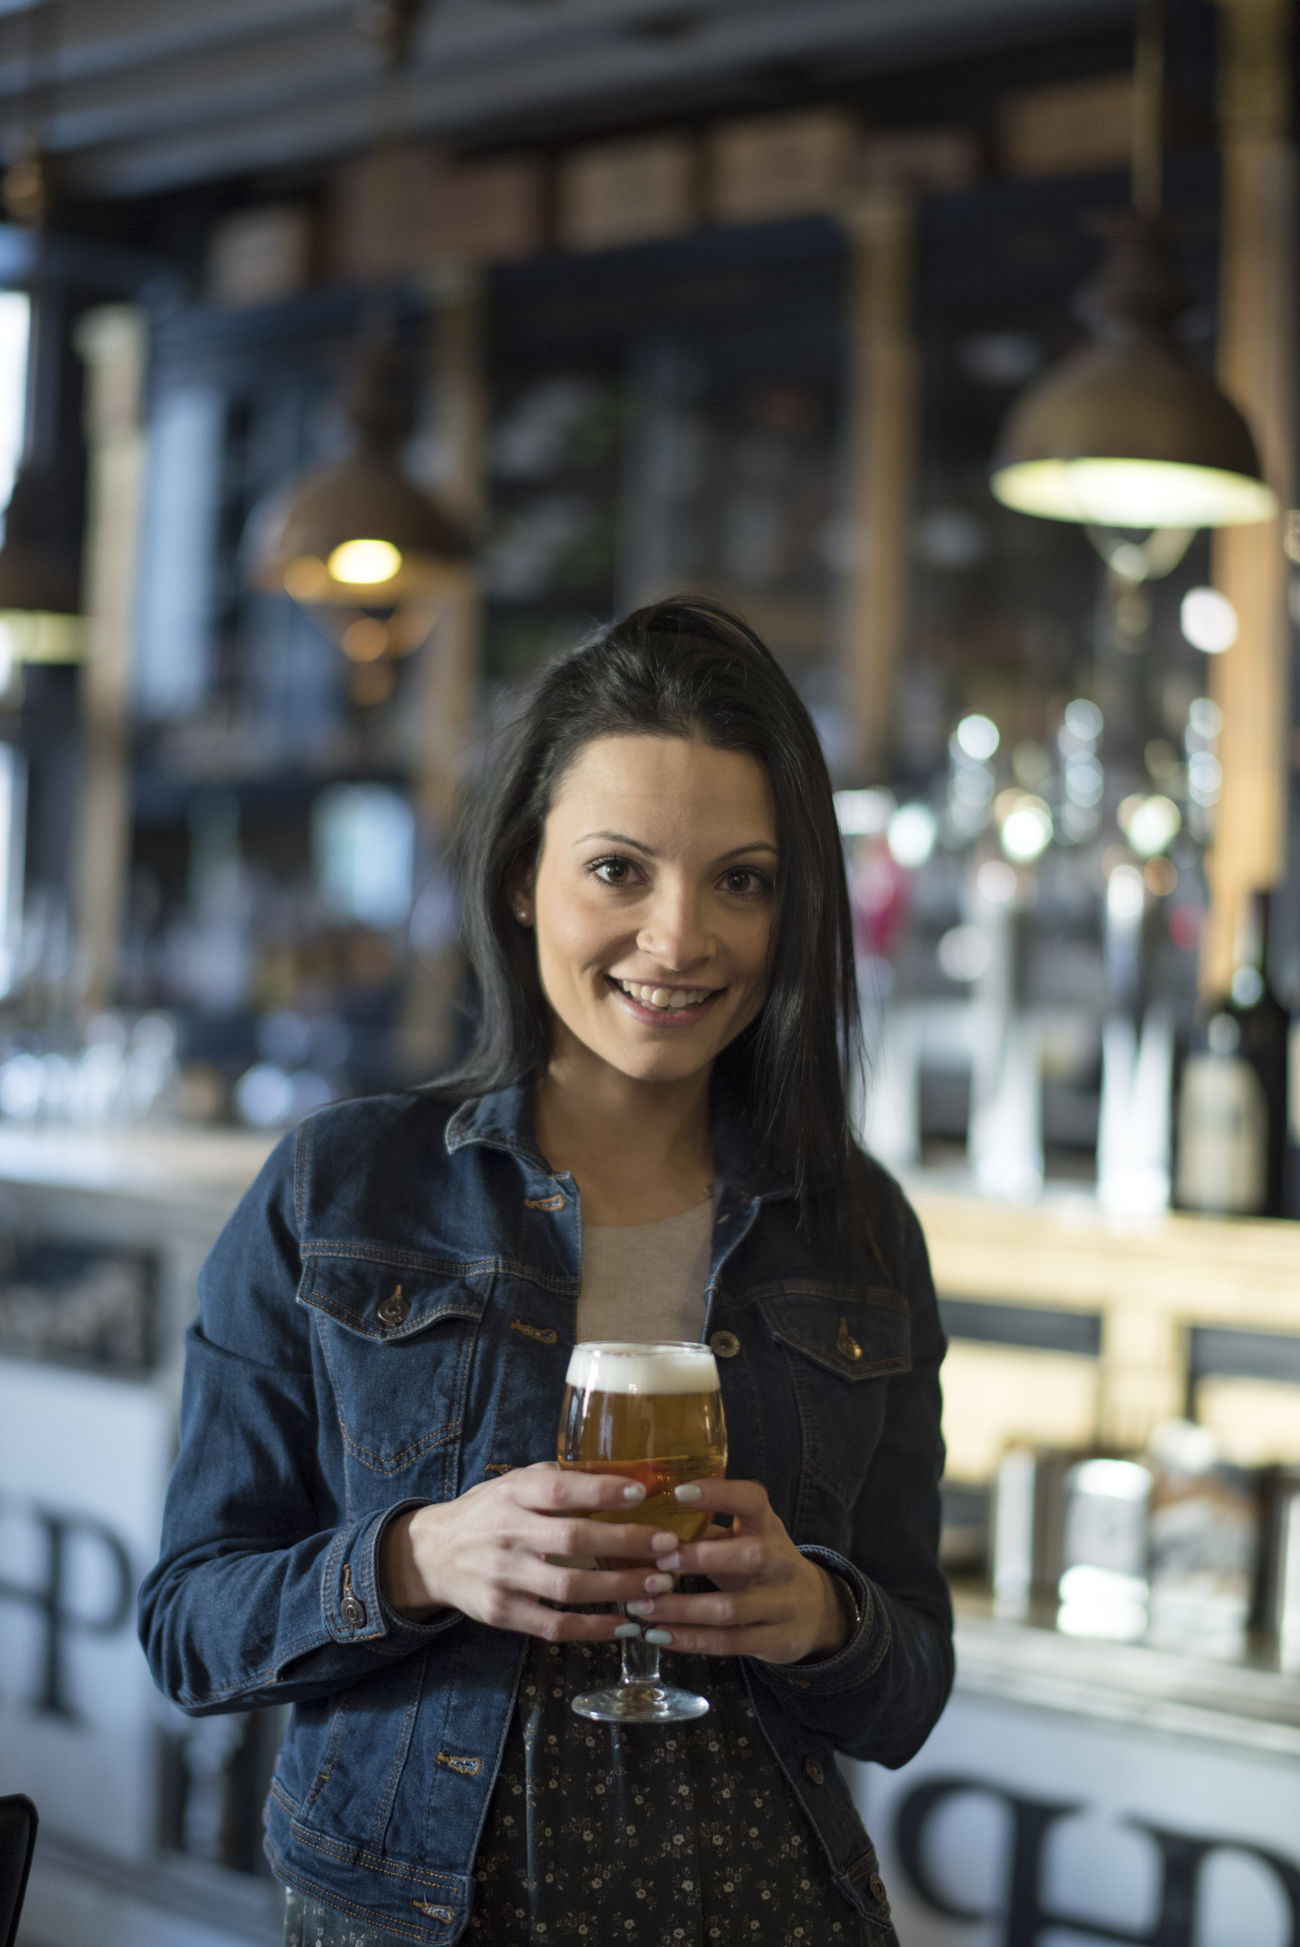 Alcohlday Alcohol Bar Beer Beer Glass Casual Clothing Drink Drinking Focus On Foreground Food And Drink Front View Happiness Happy Looking At Camera One Person People Portrait Real People Refreshment Restaurant Smiling Standing Woman Woman Portrait Young Adult